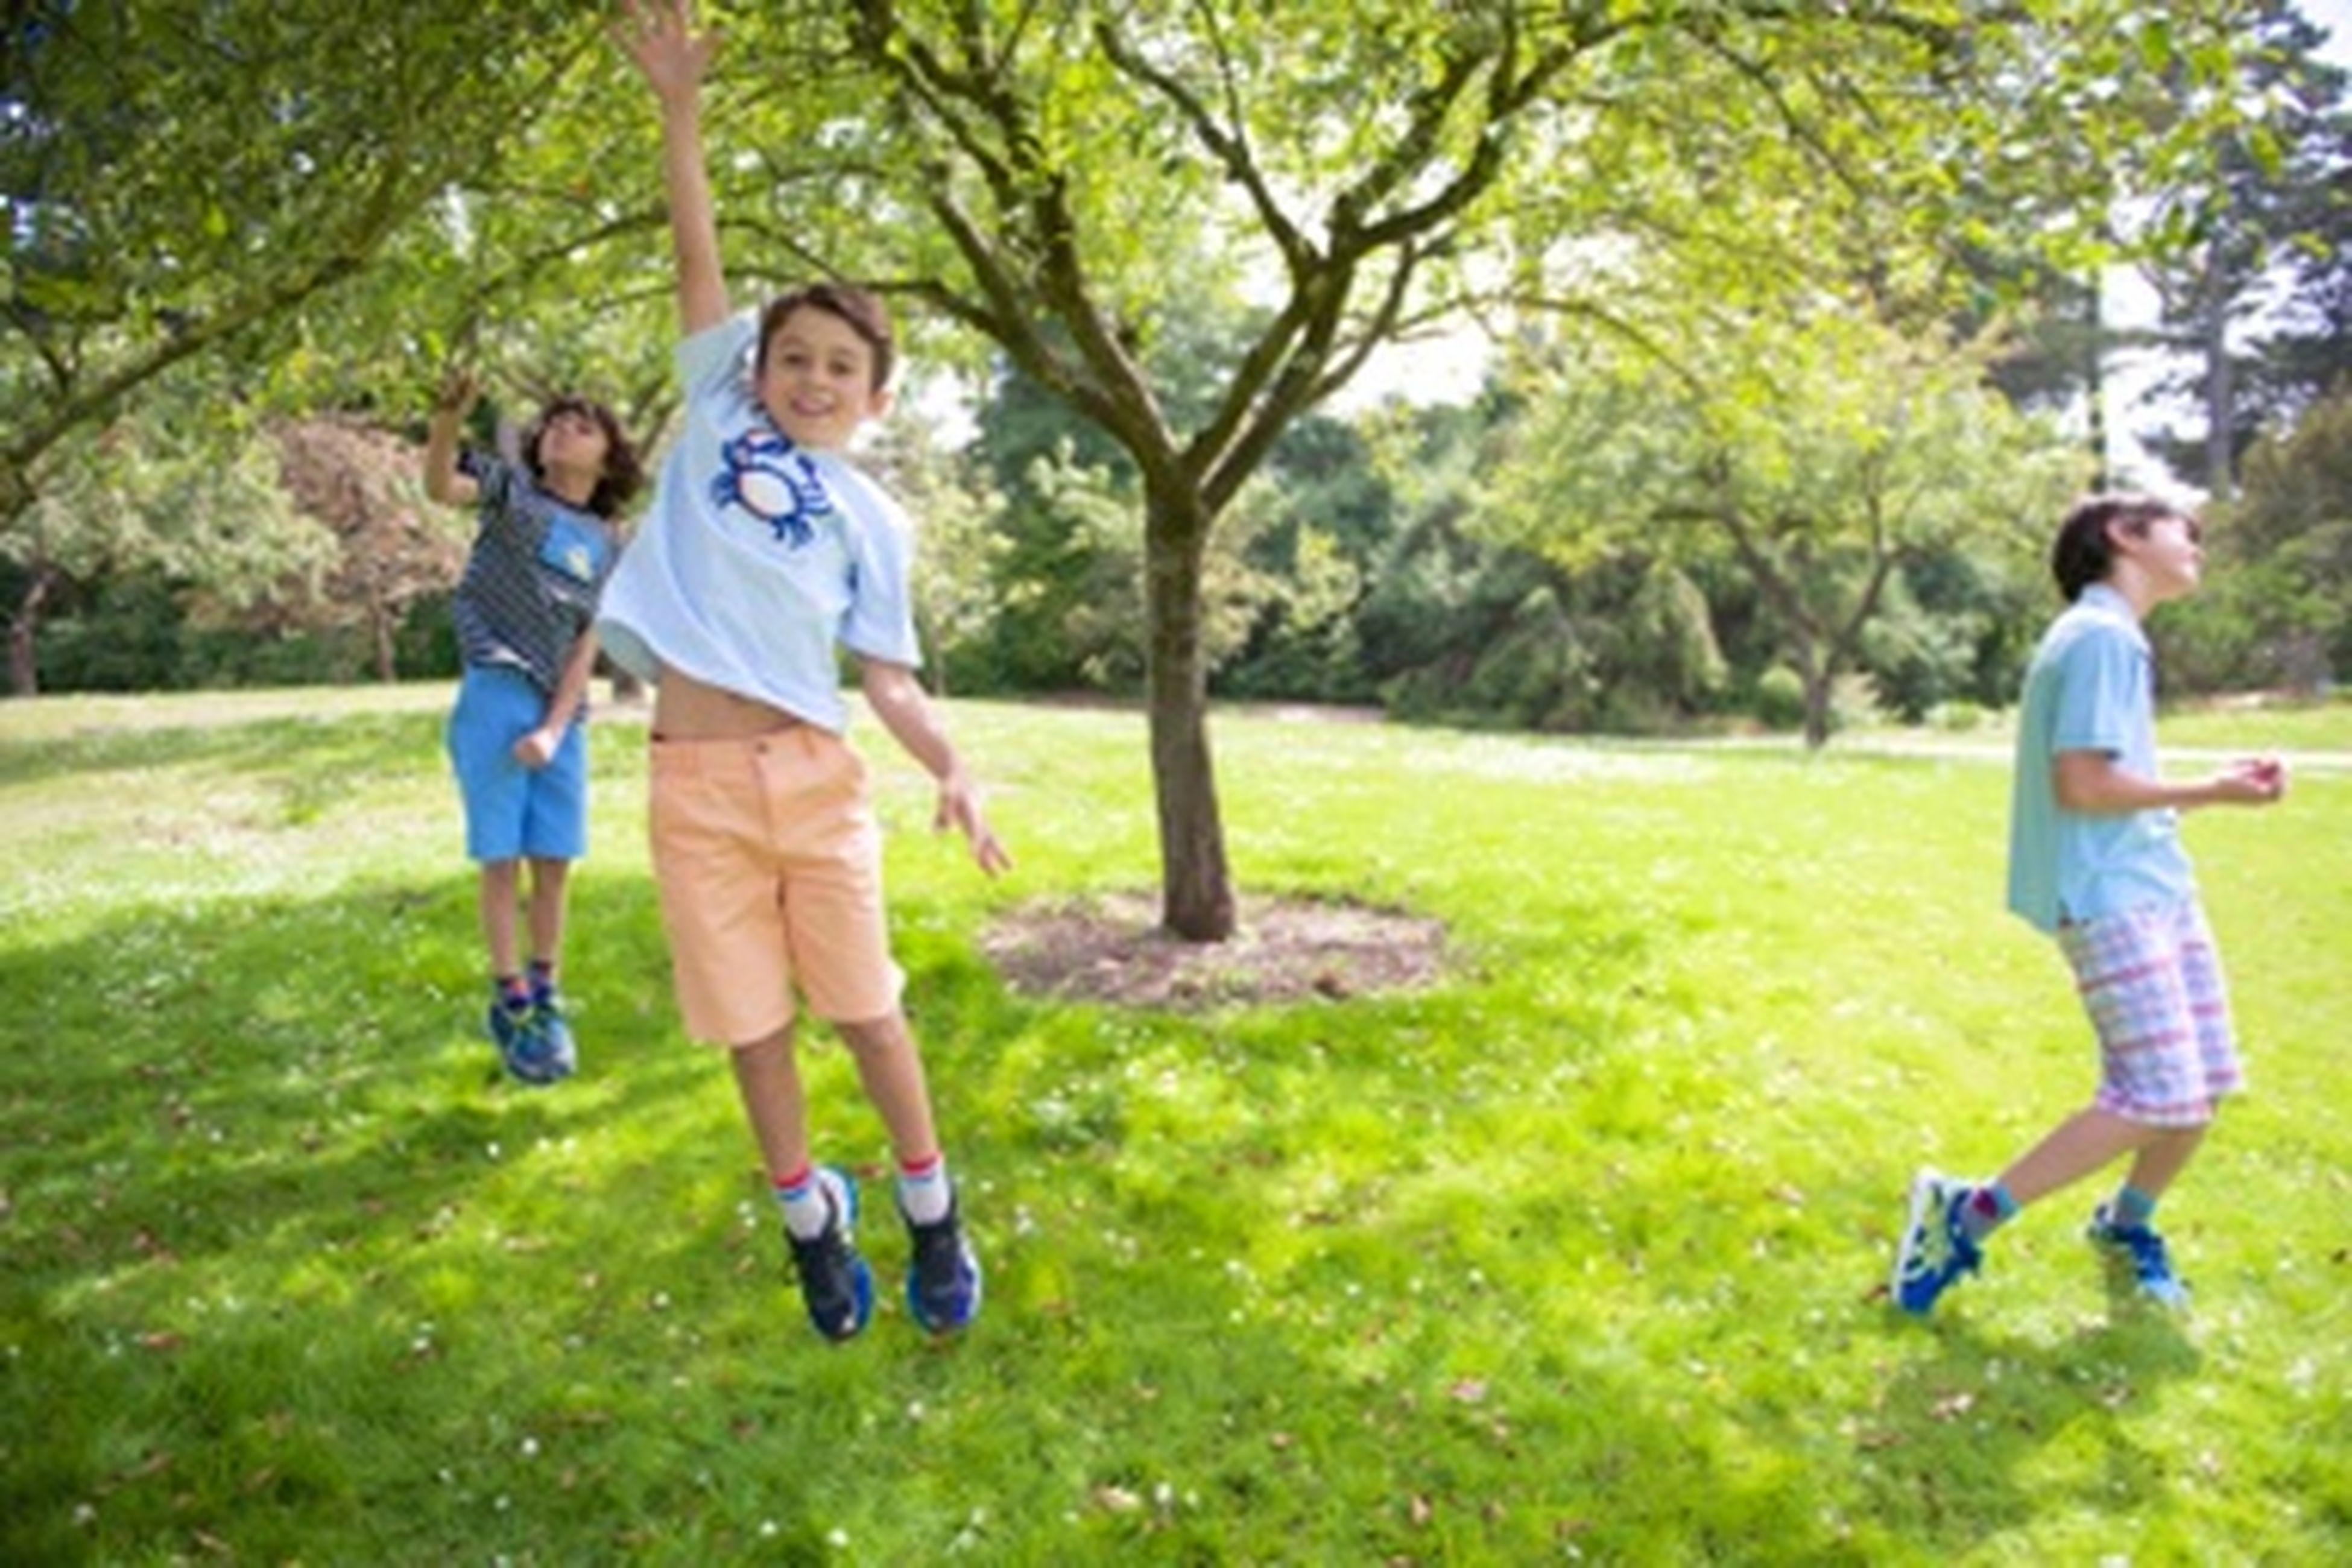 childhood, grass, lifestyles, leisure activity, full length, boys, elementary age, casual clothing, tree, playing, girls, green color, playful, park - man made space, person, fun, innocence, enjoyment